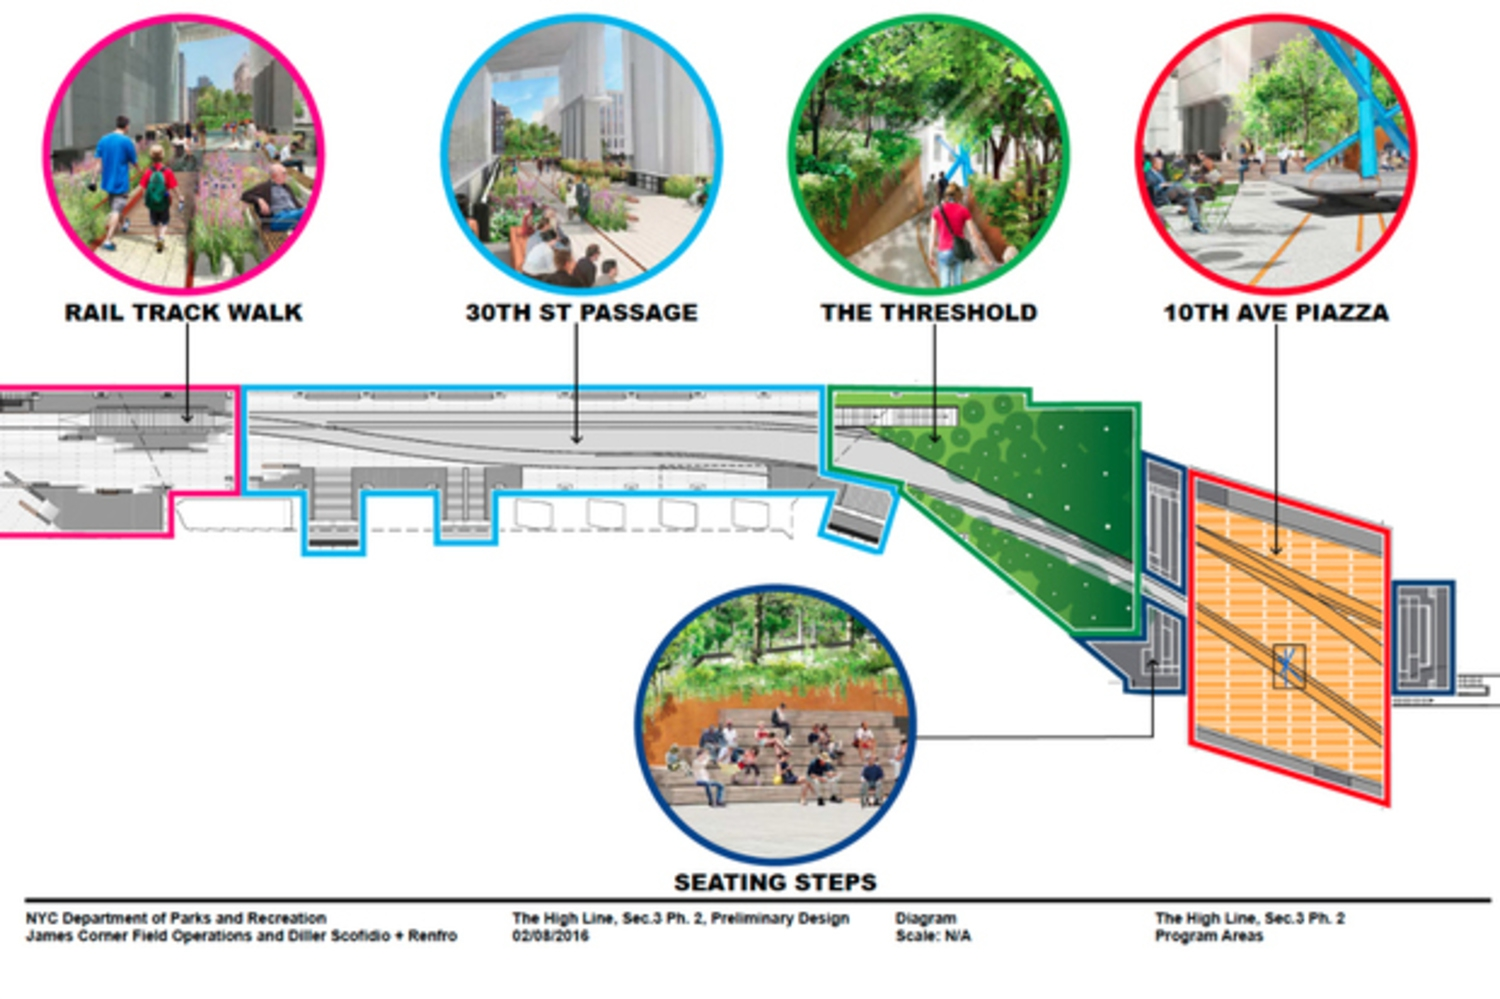 The Parks Department's plan for the last portion of the High Line includes a piazza above 10th Avenue at 30th Street. The piazza will have rotating art program.